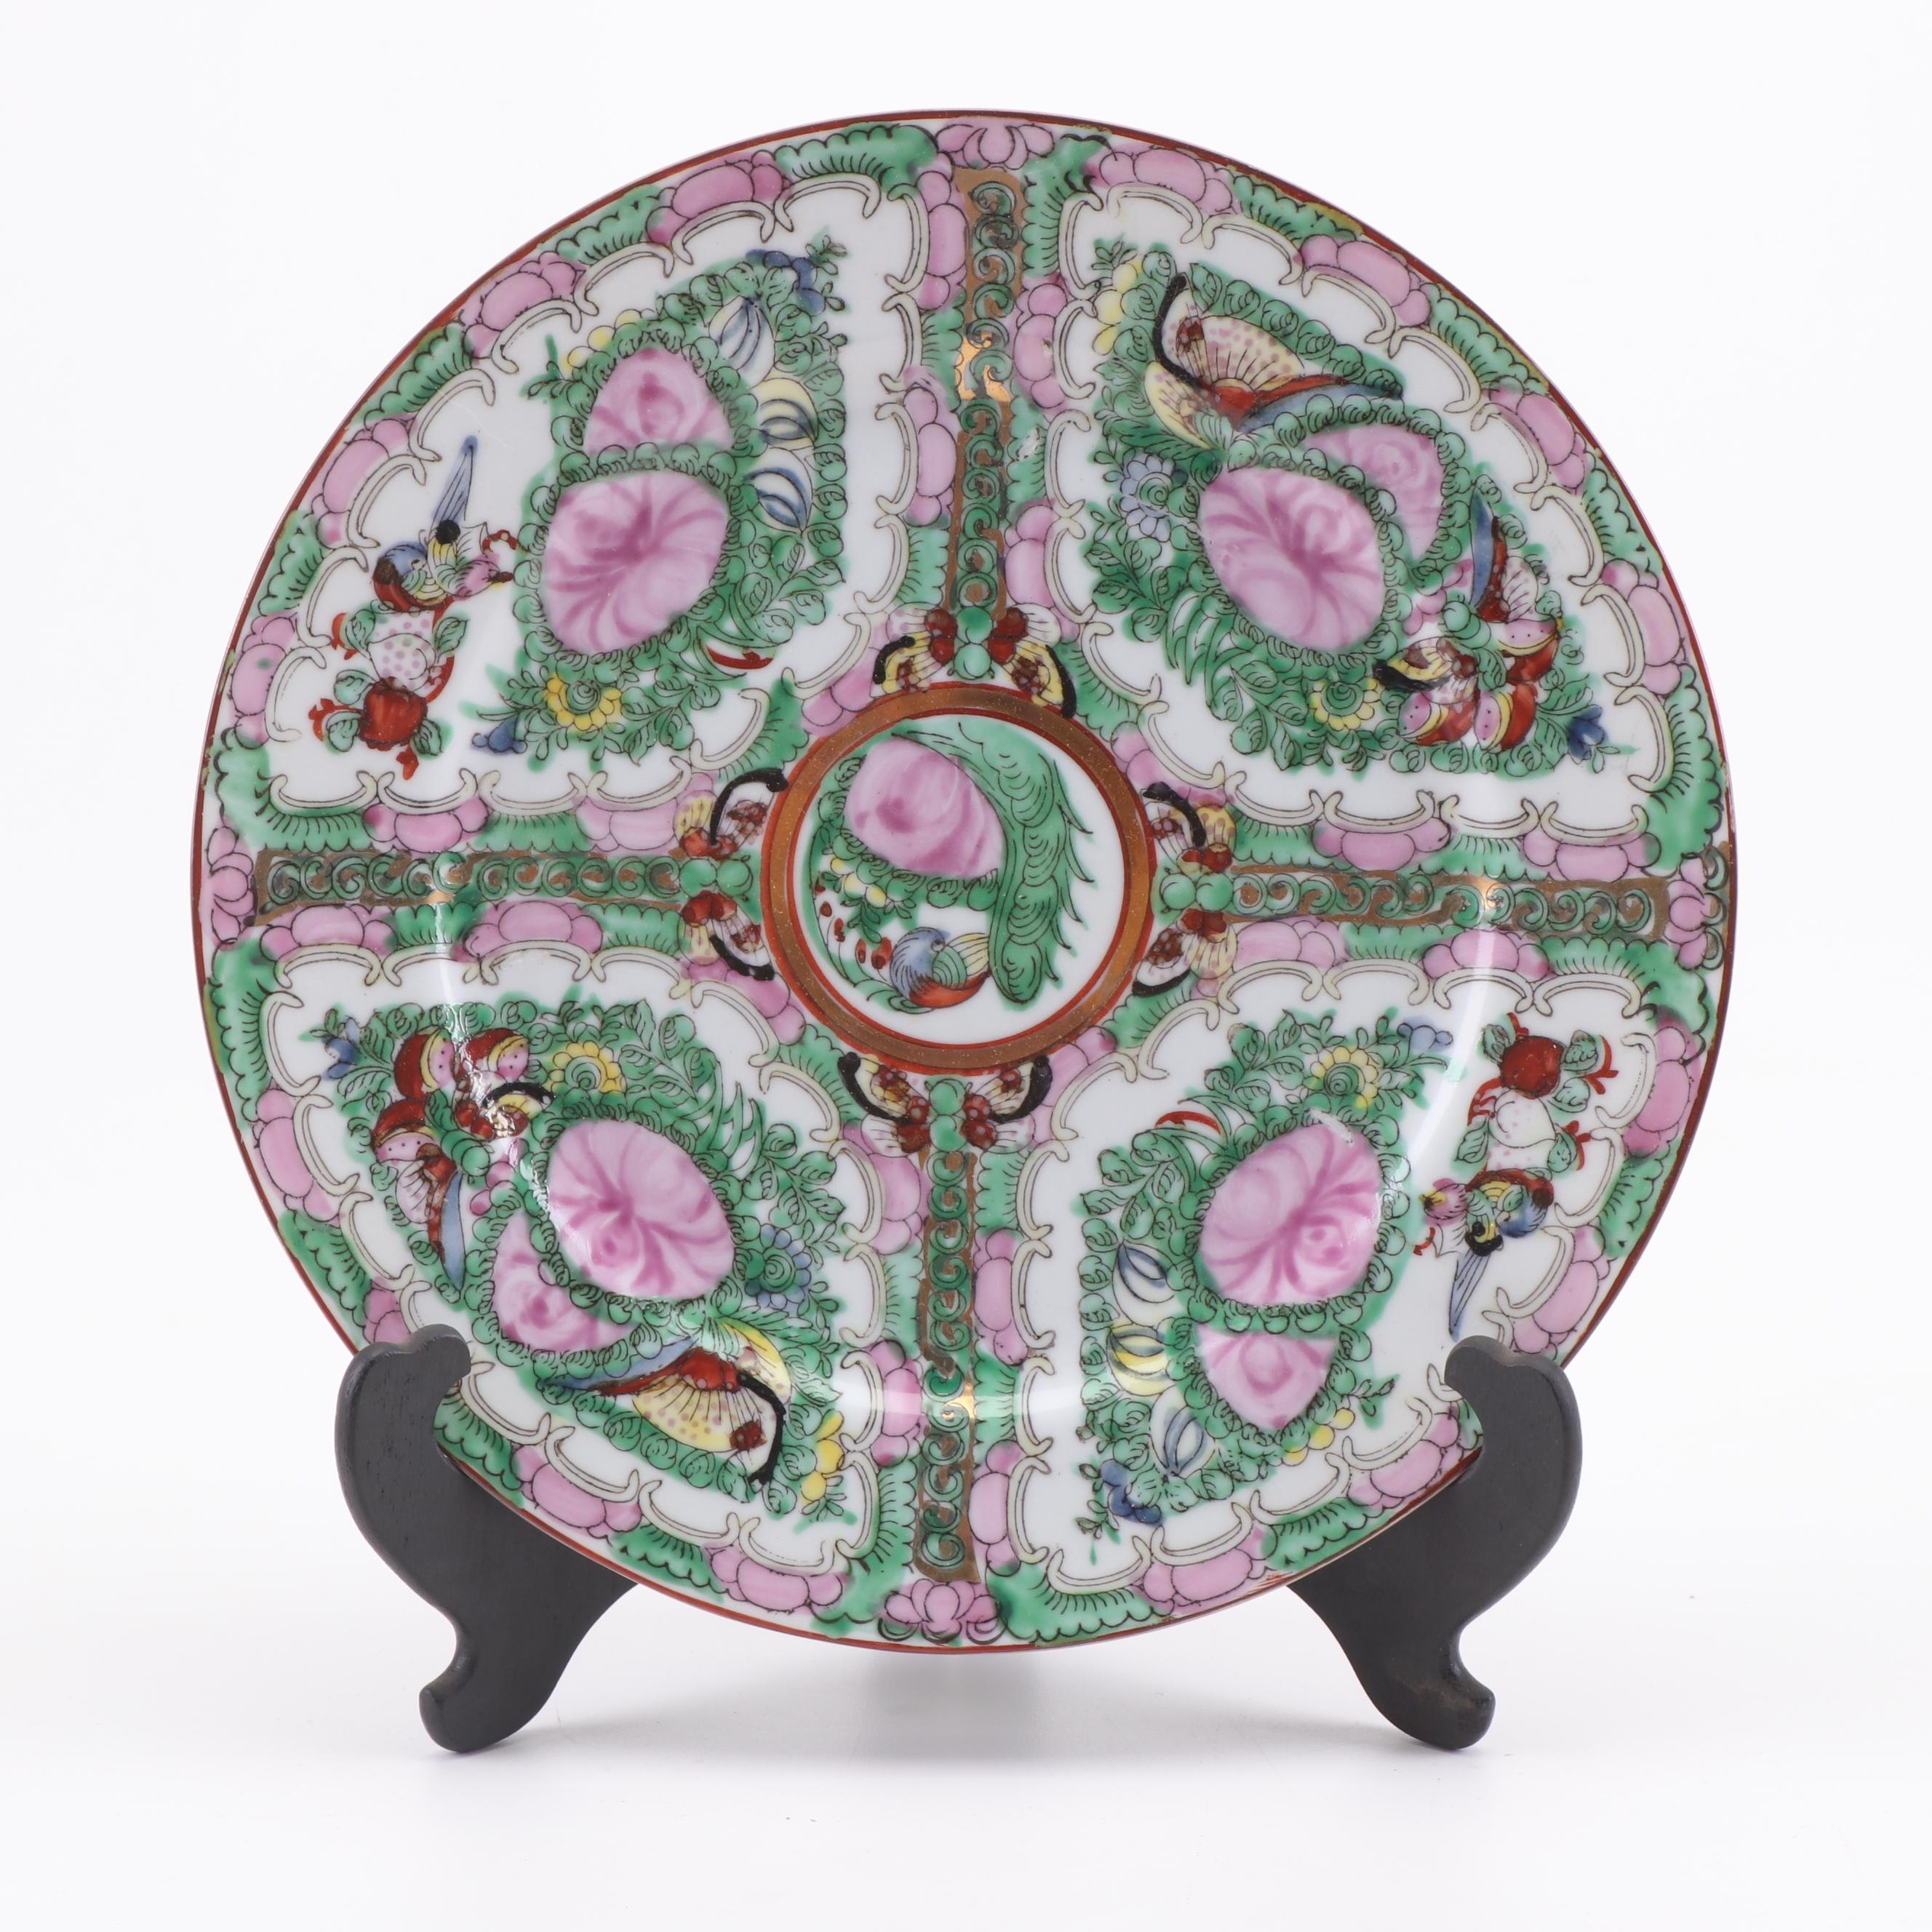 Chinese Rose Canton Hand-Painted Porcelain Plate with Stand